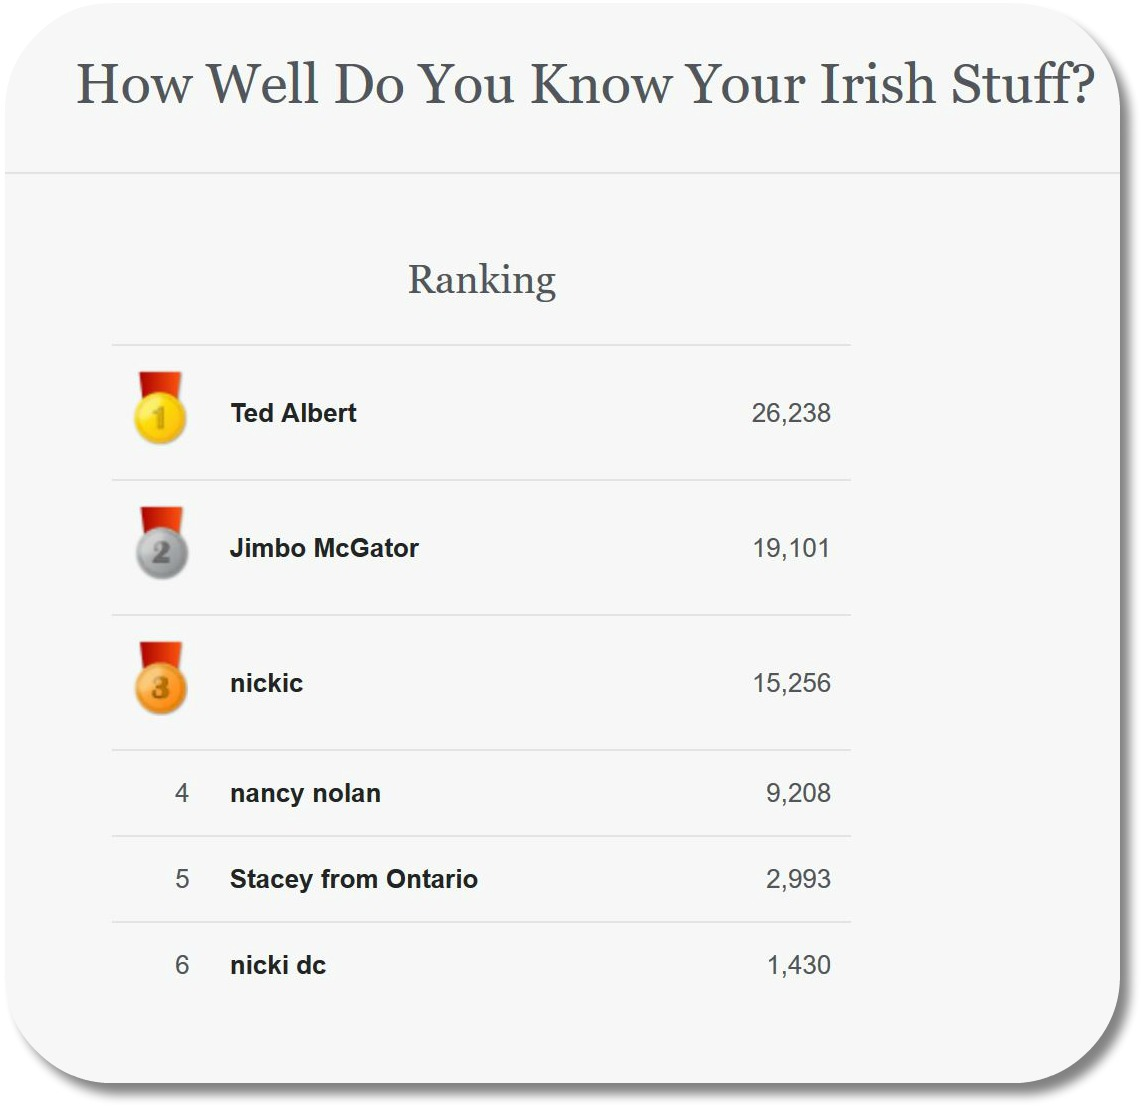 Irish Party Games - How Well Do You Know Your Irish Stuff?